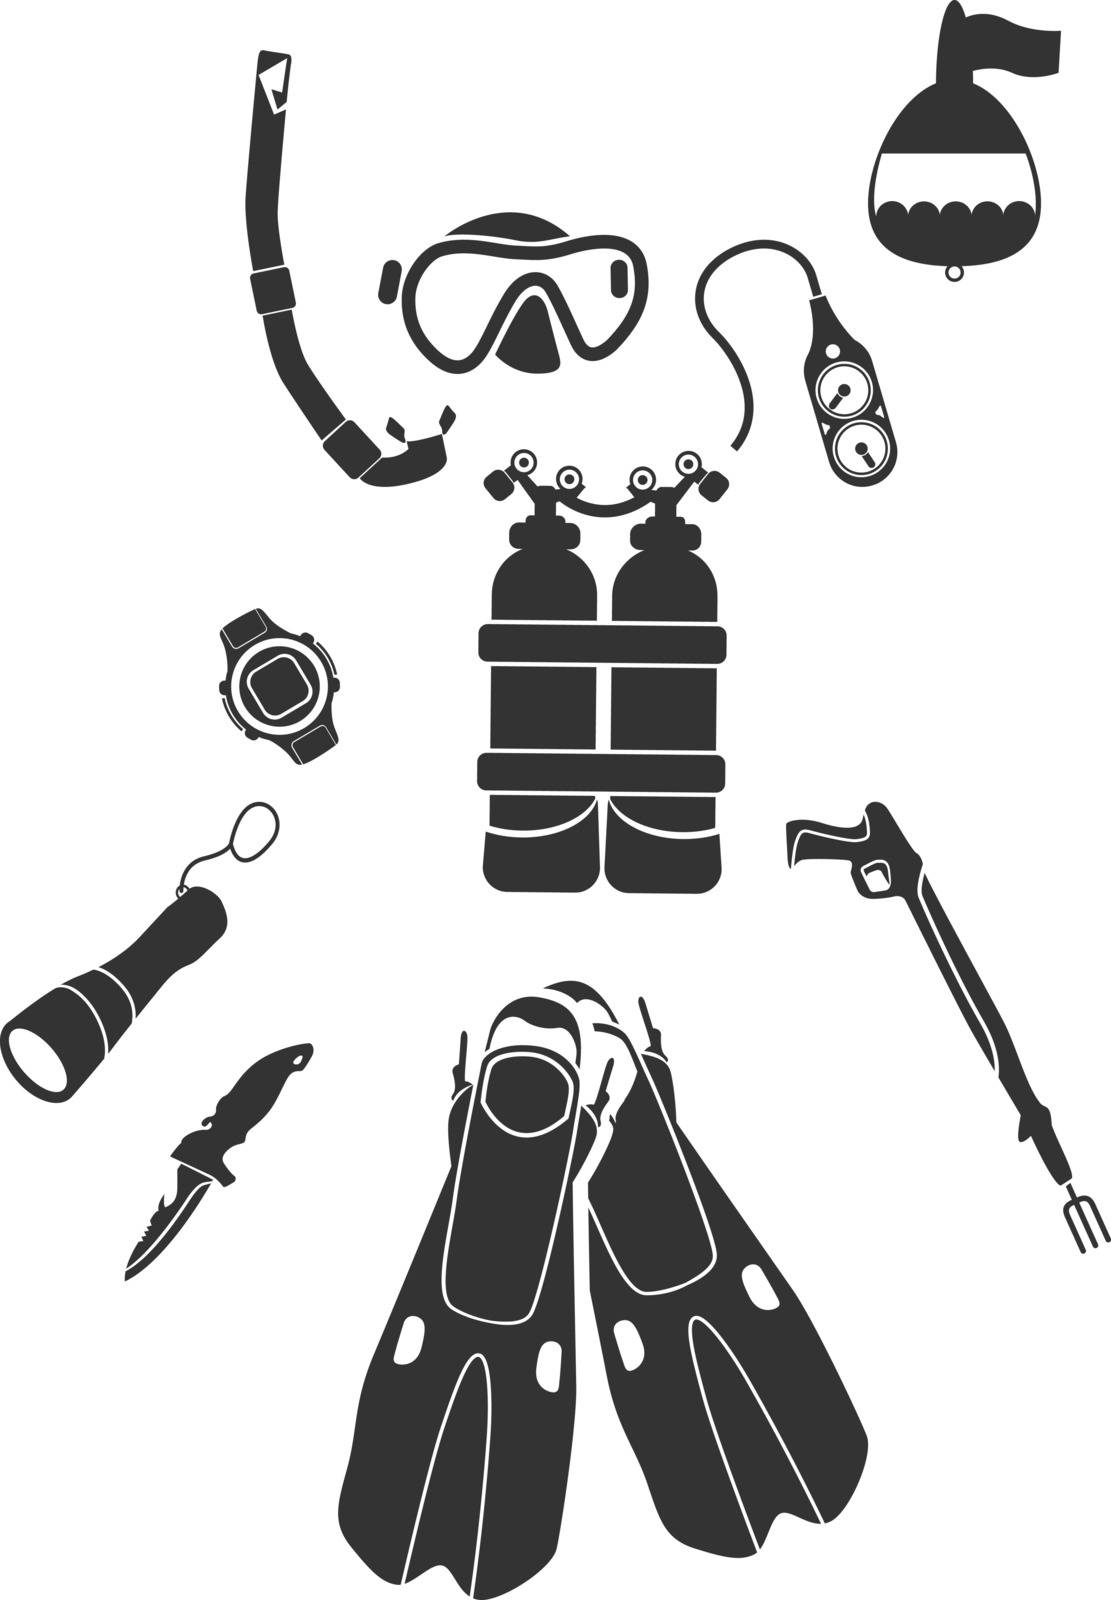 Equipment for Diving by ayax